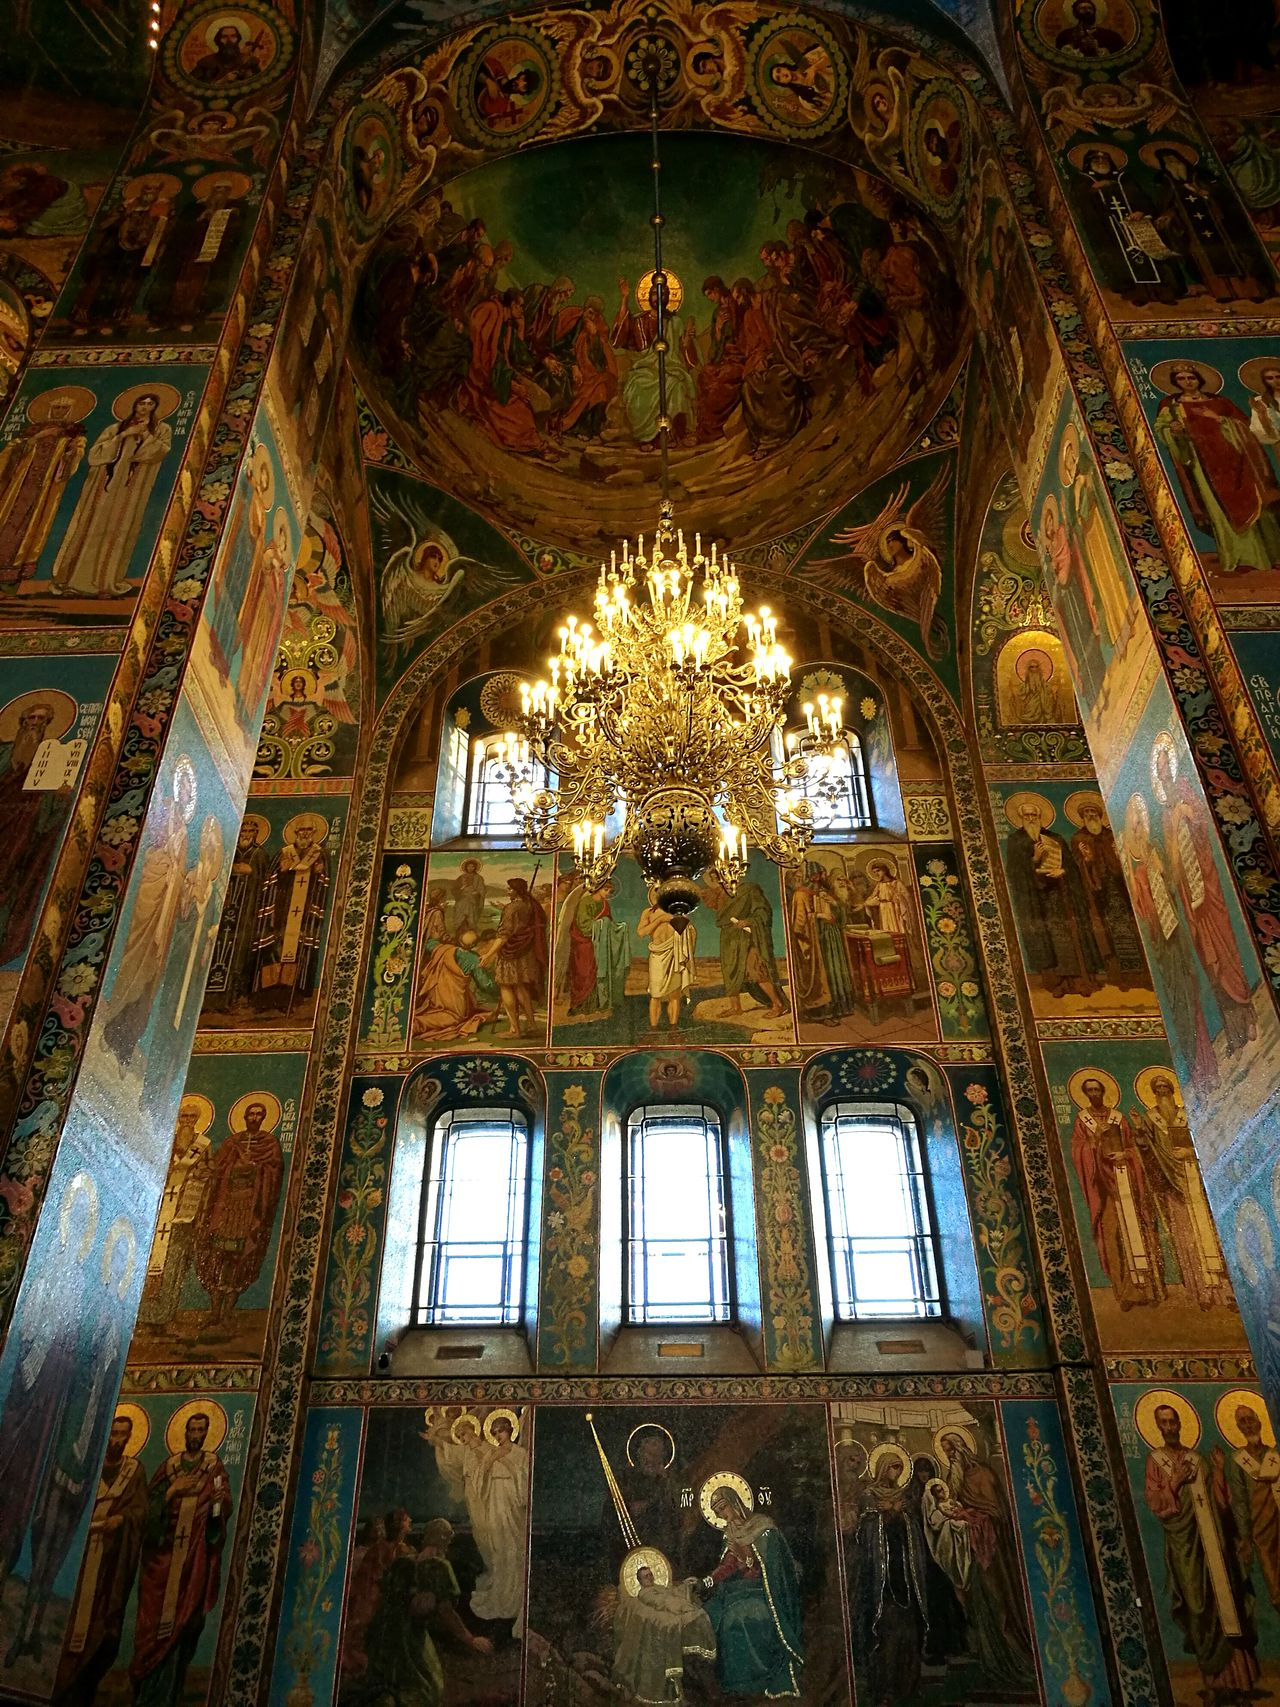 СпасНаКрови Religion Indoors  Place Of Worship No People Spirituality Architecture Low Angle View Travel Destinations Gold Colored Horizontal Day